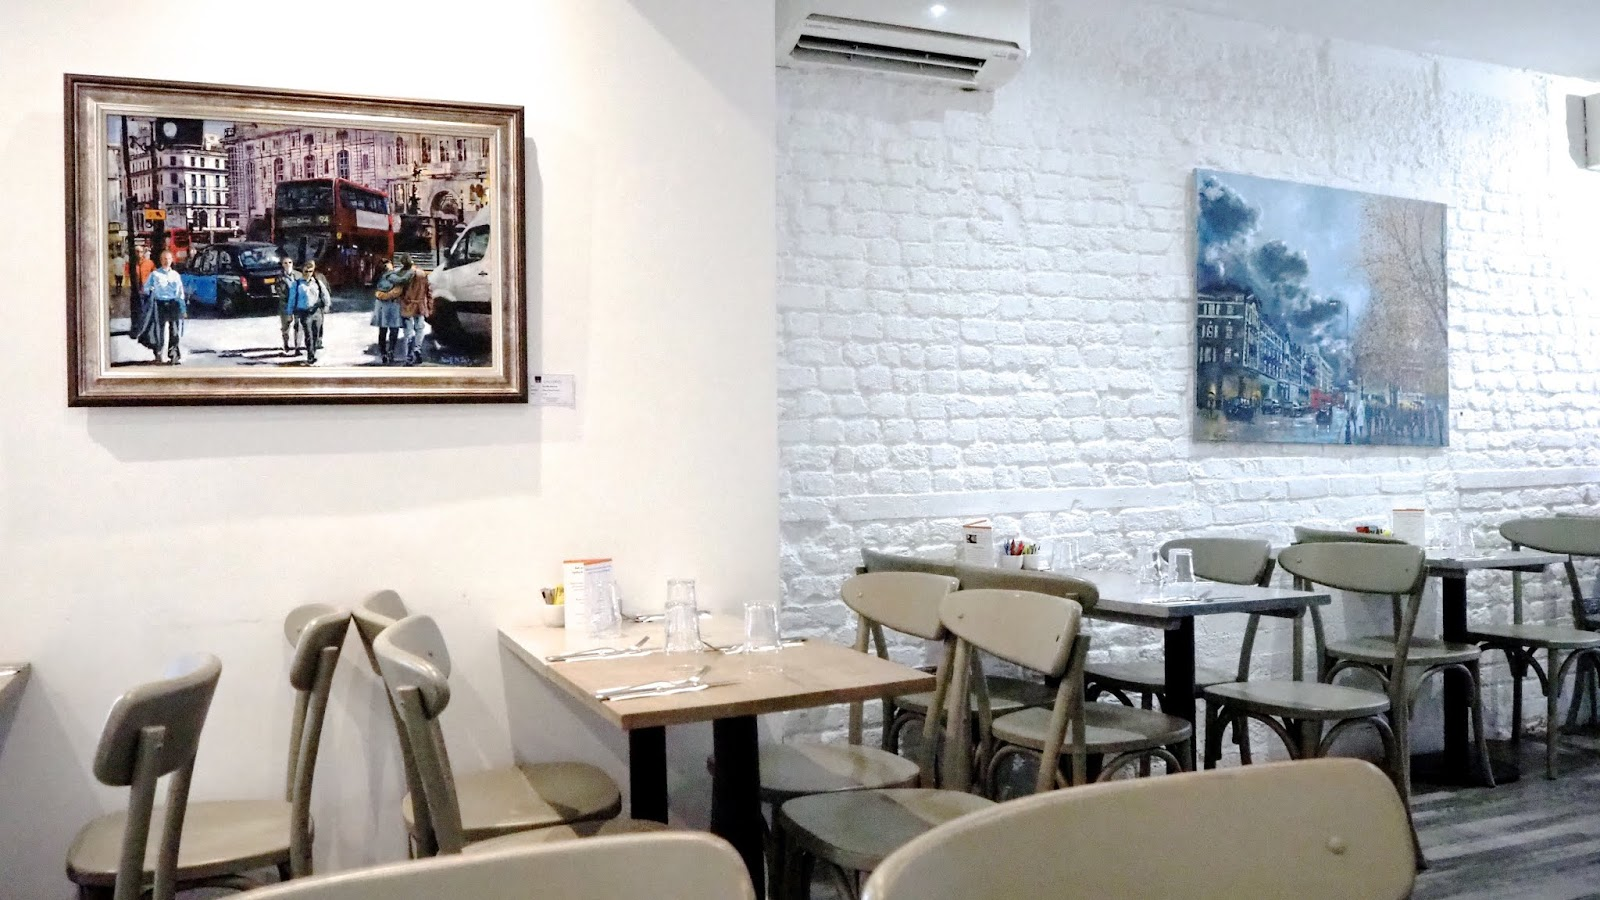 tables & chairs and paintings on the wall at Chelsea Creperie